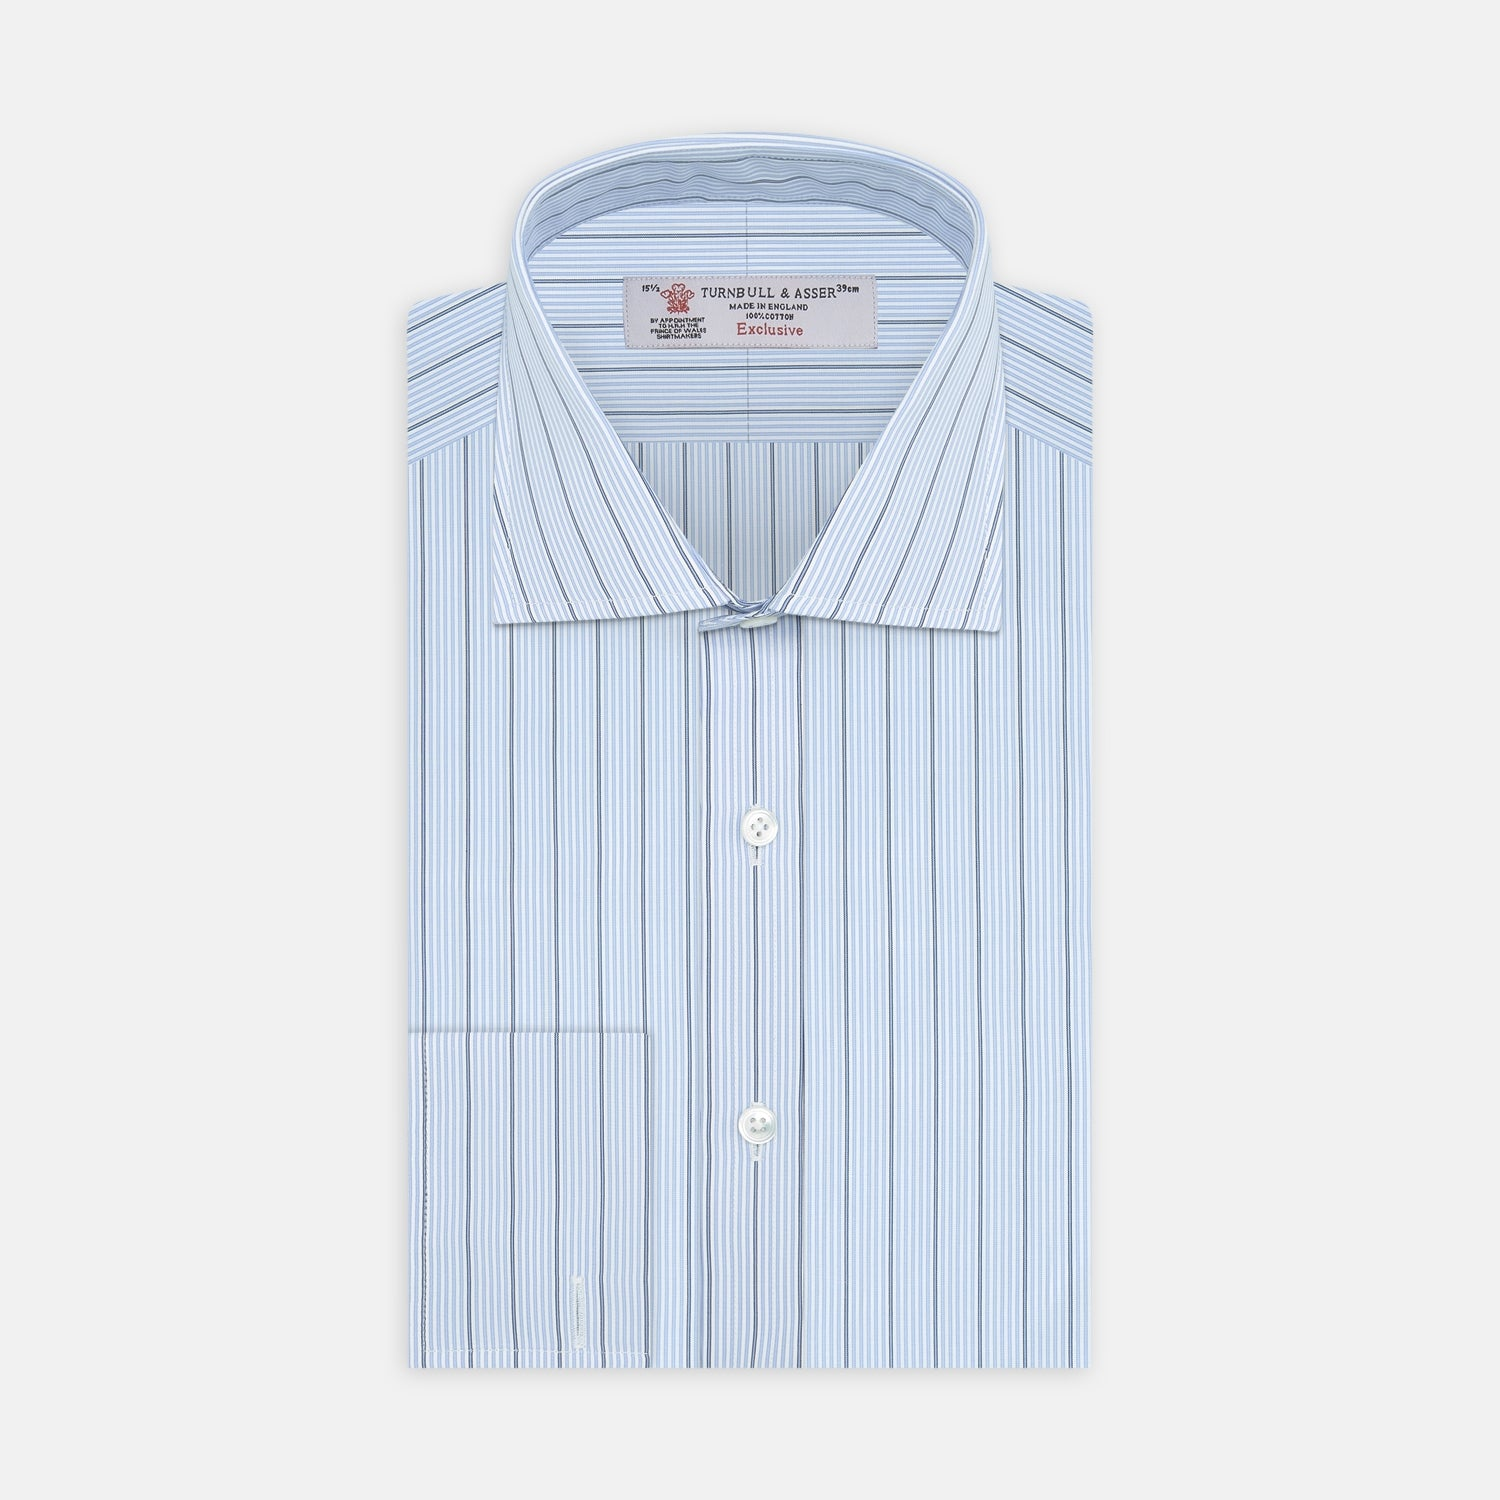 Sky Blue and Turquoise Pinstripe Shirt with Regent Collar and Double Cuffs